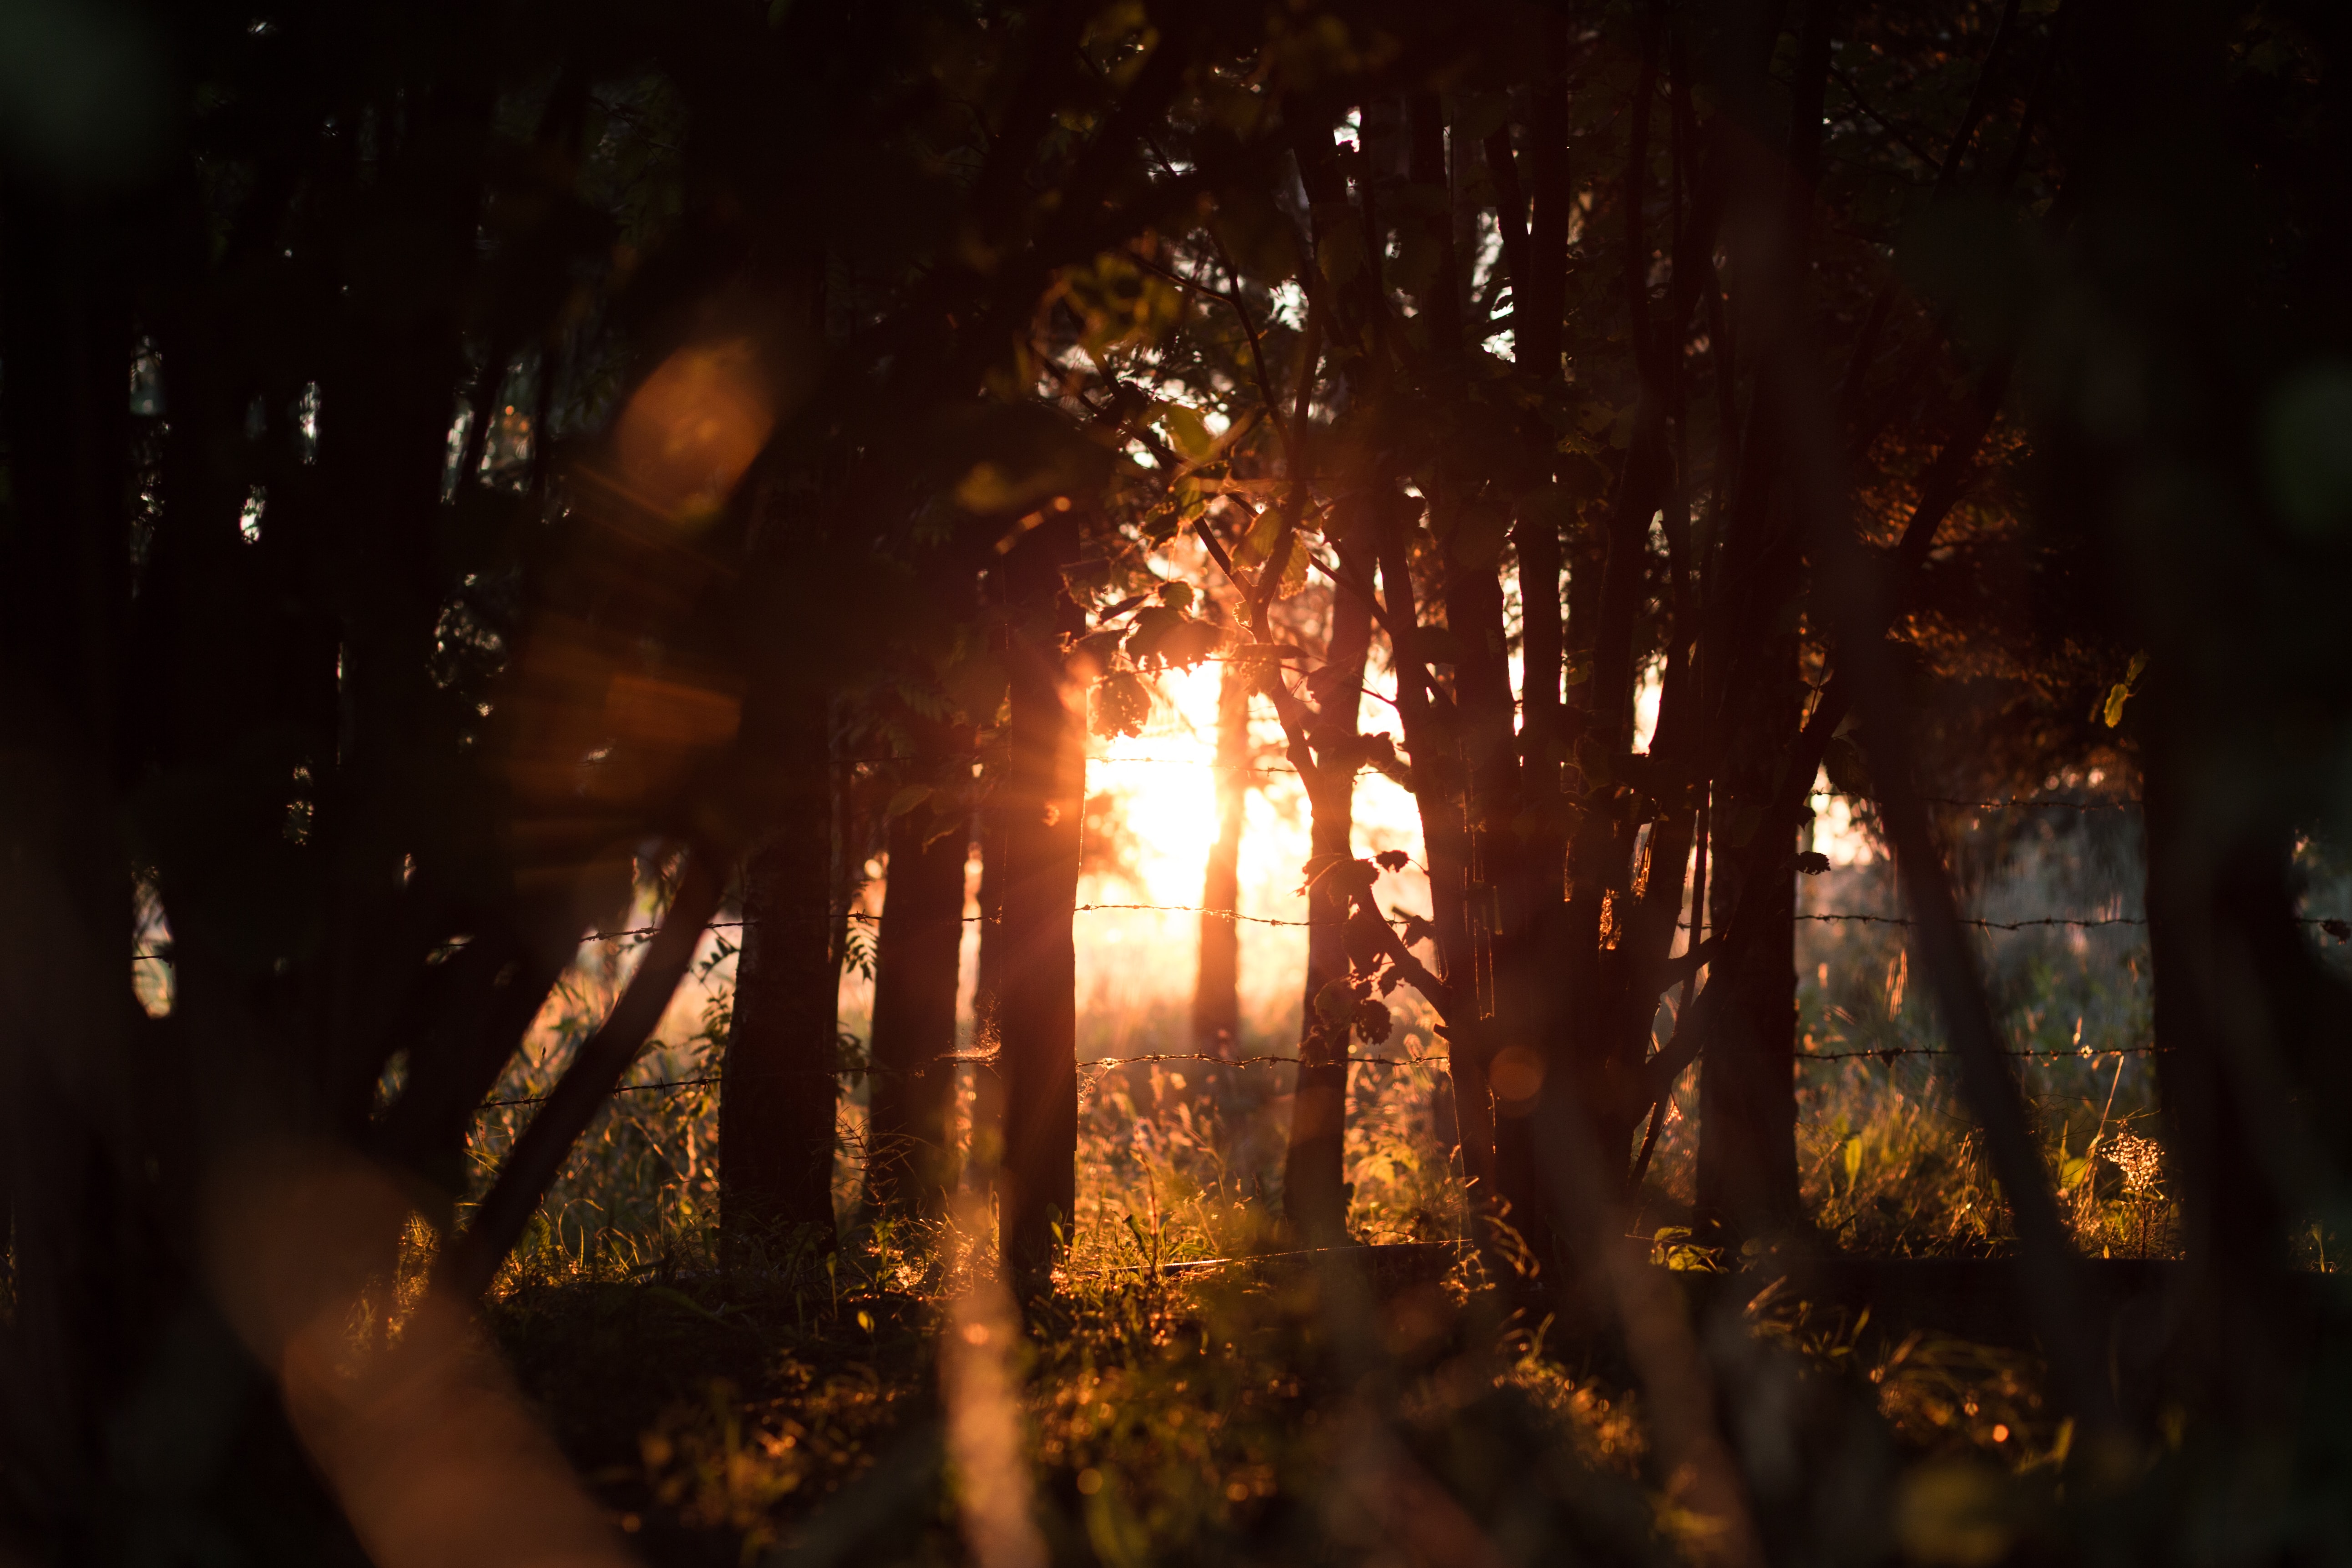 Sun rays peeking through trees near a wire fence during golden hour